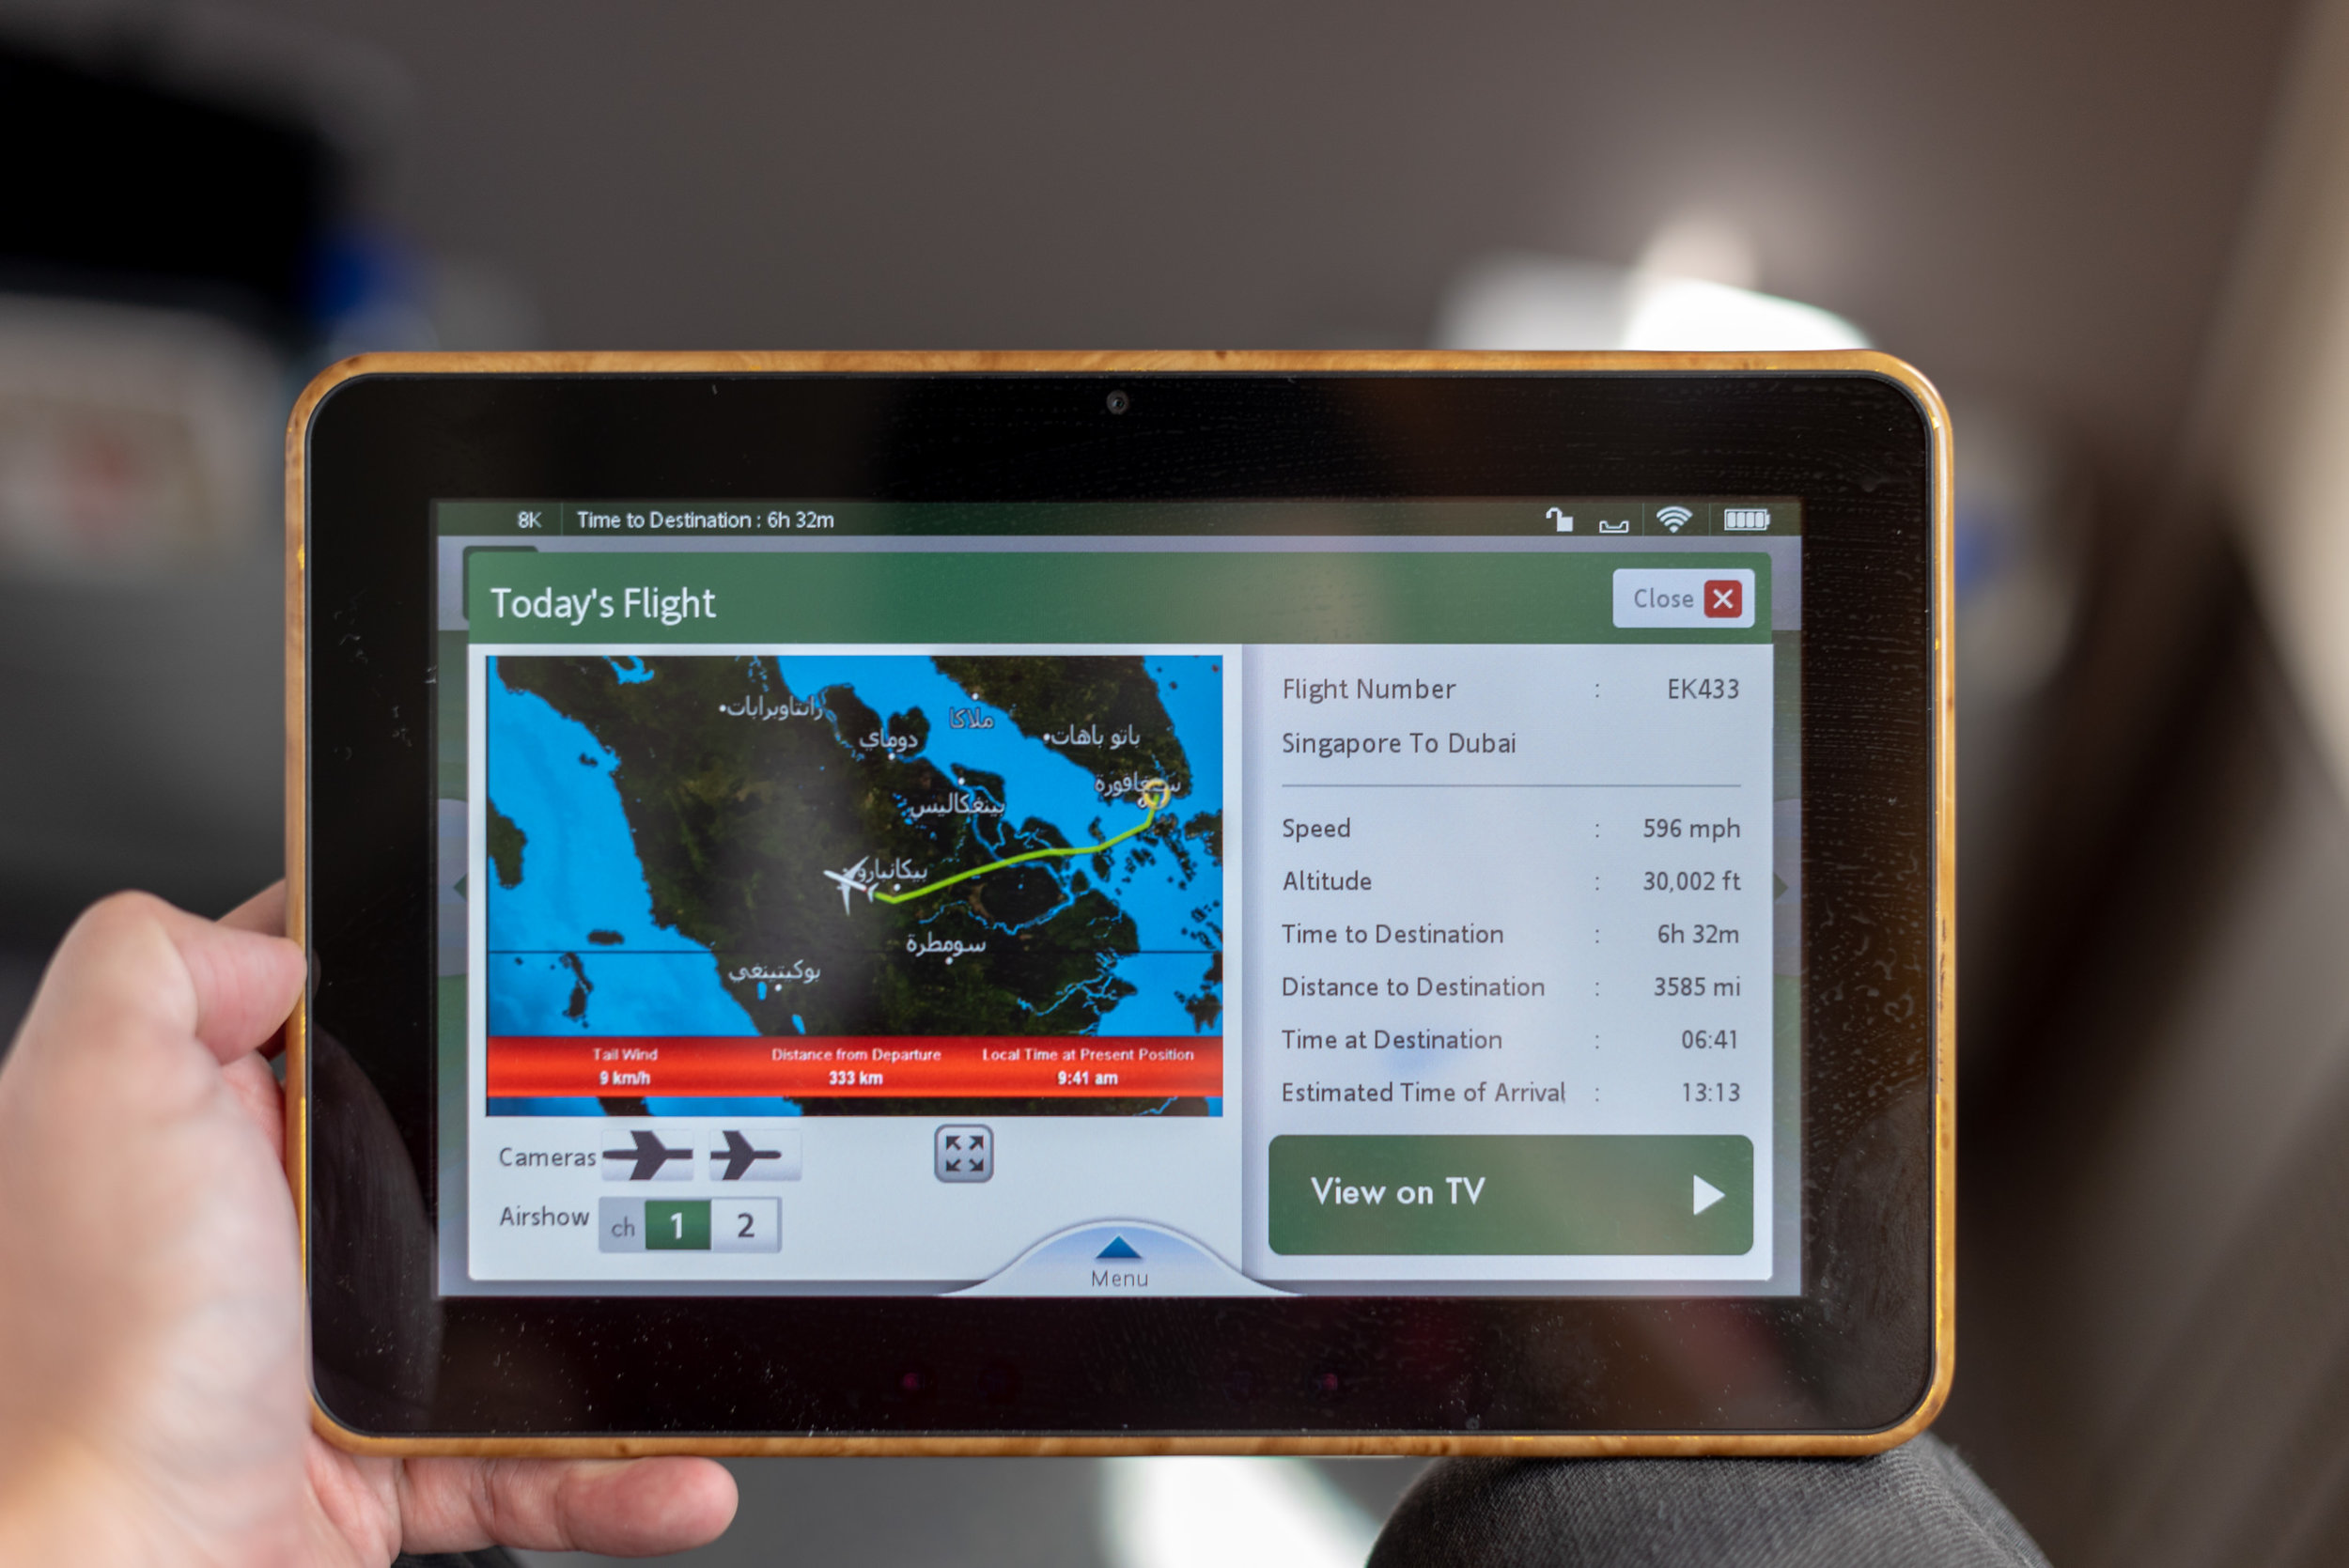 Button Release for Personal Tablet   Emirates Business Class 777-300ER - SIN to DXB